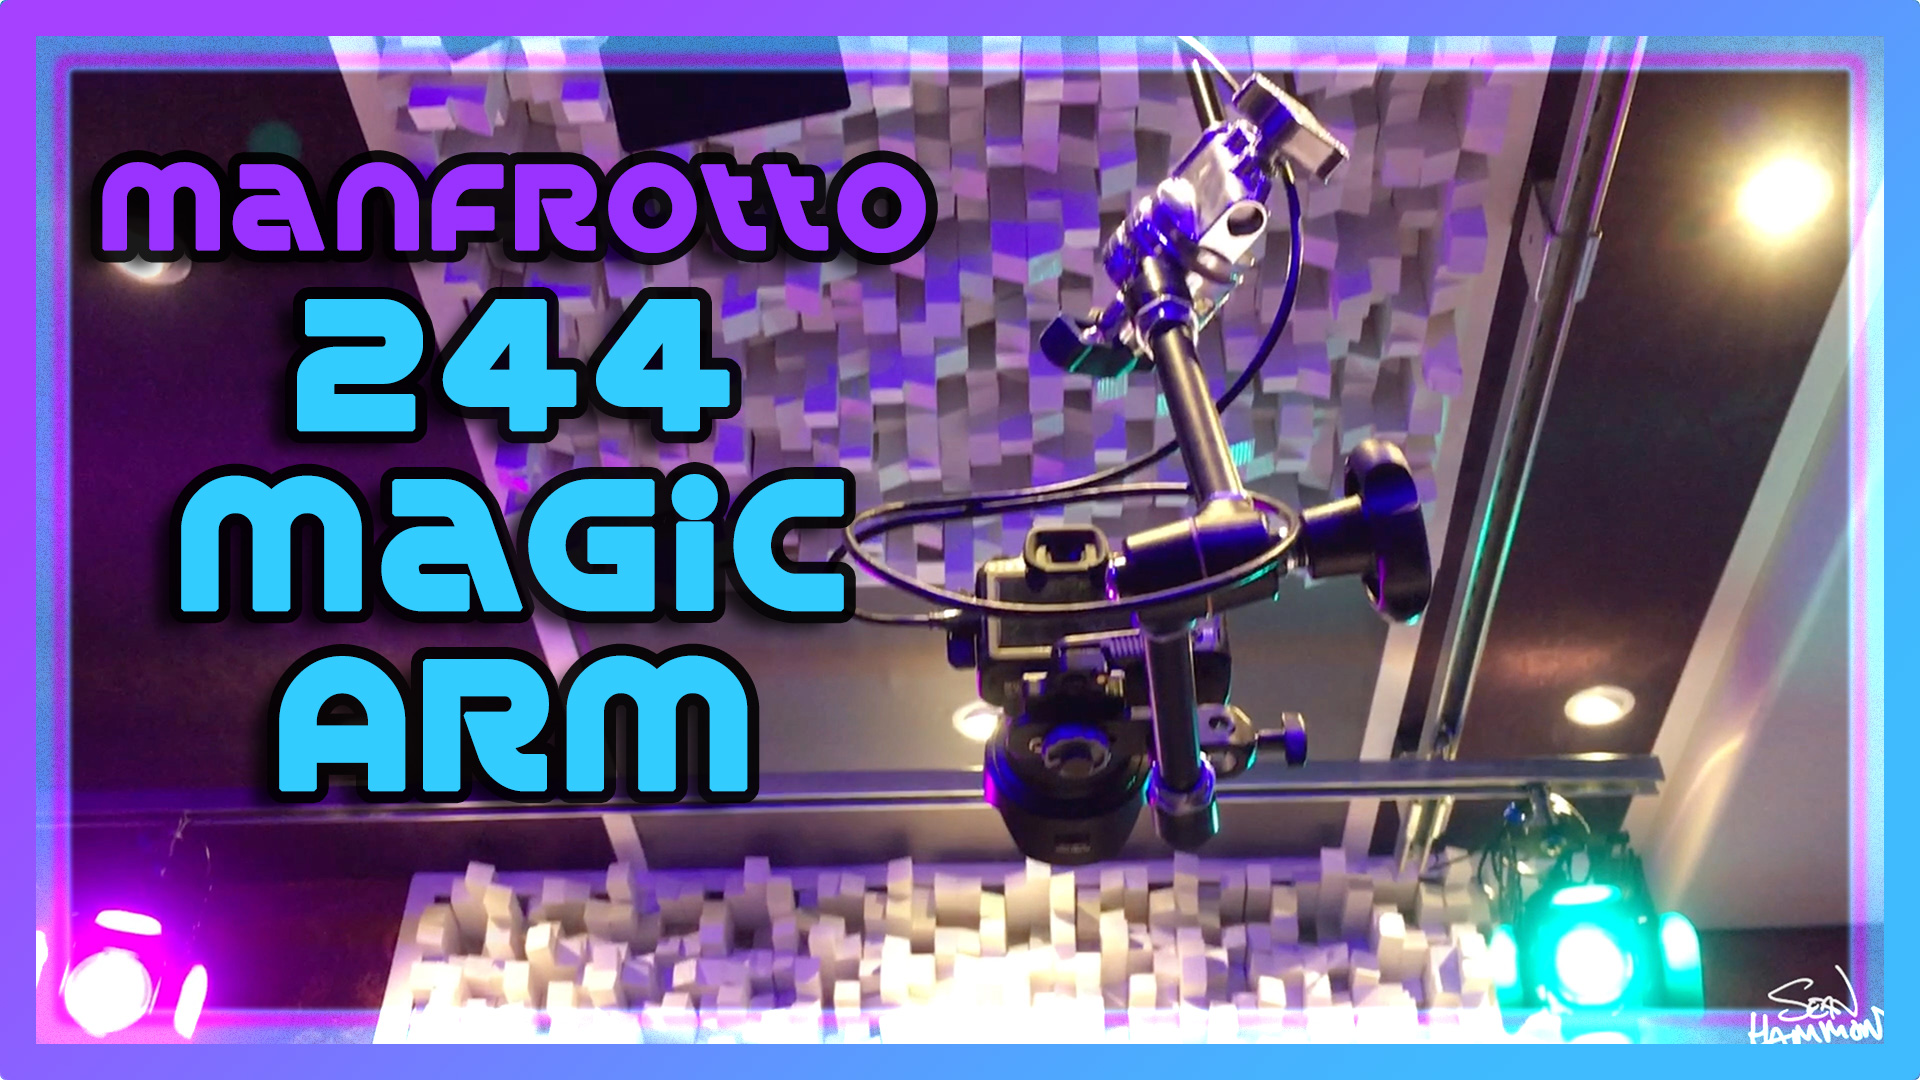 Manfrotto 244 Magic Arm Video Review